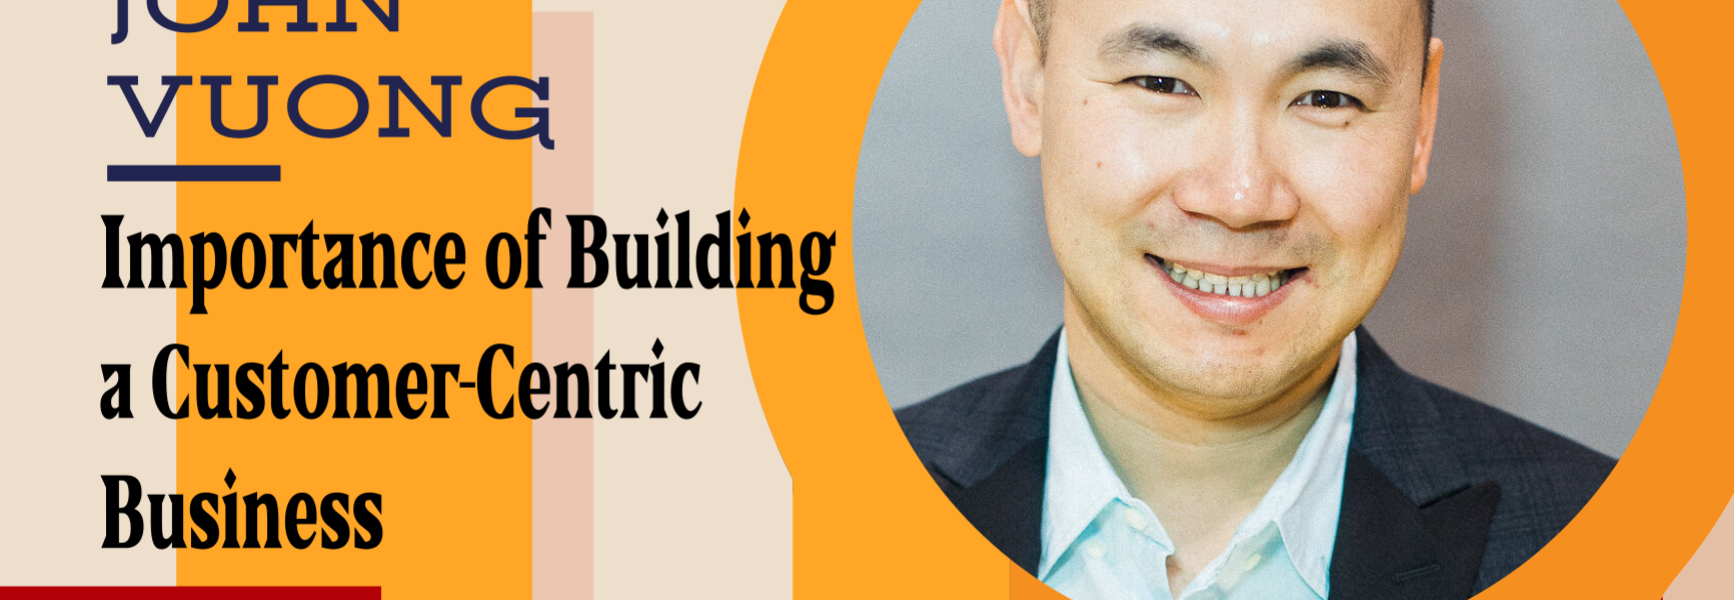 Having a Customer-Centric Culture in Your Business with John Vuong